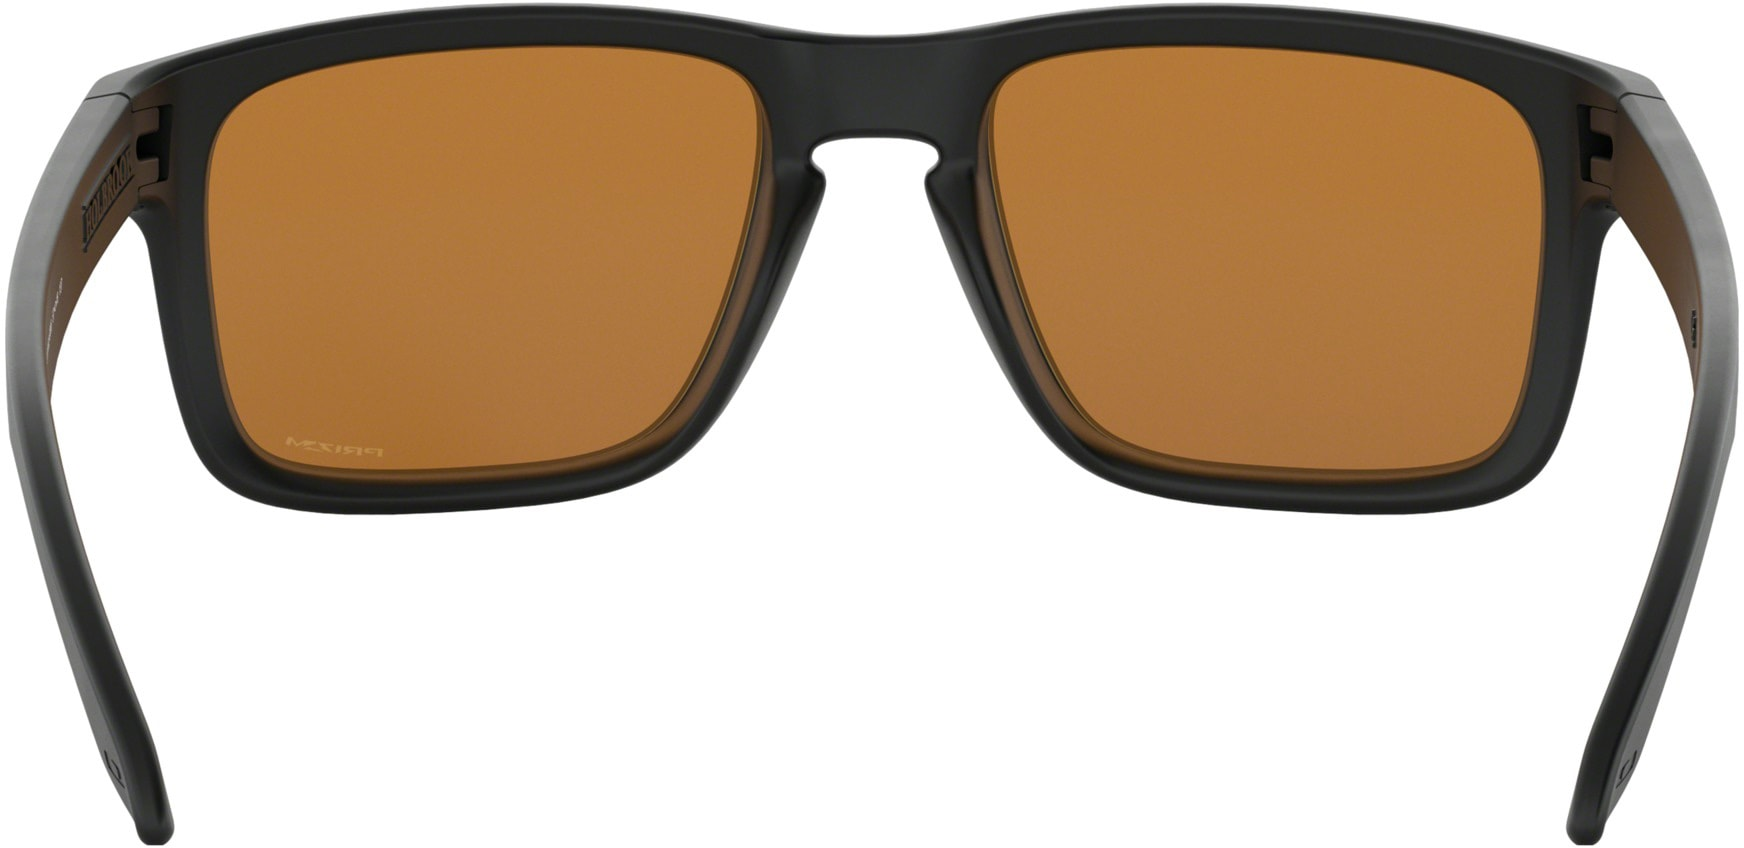 1f86a2ac40 Oakley Holbrook Fire and Ice Collection Sunglasses - thumbnail 3